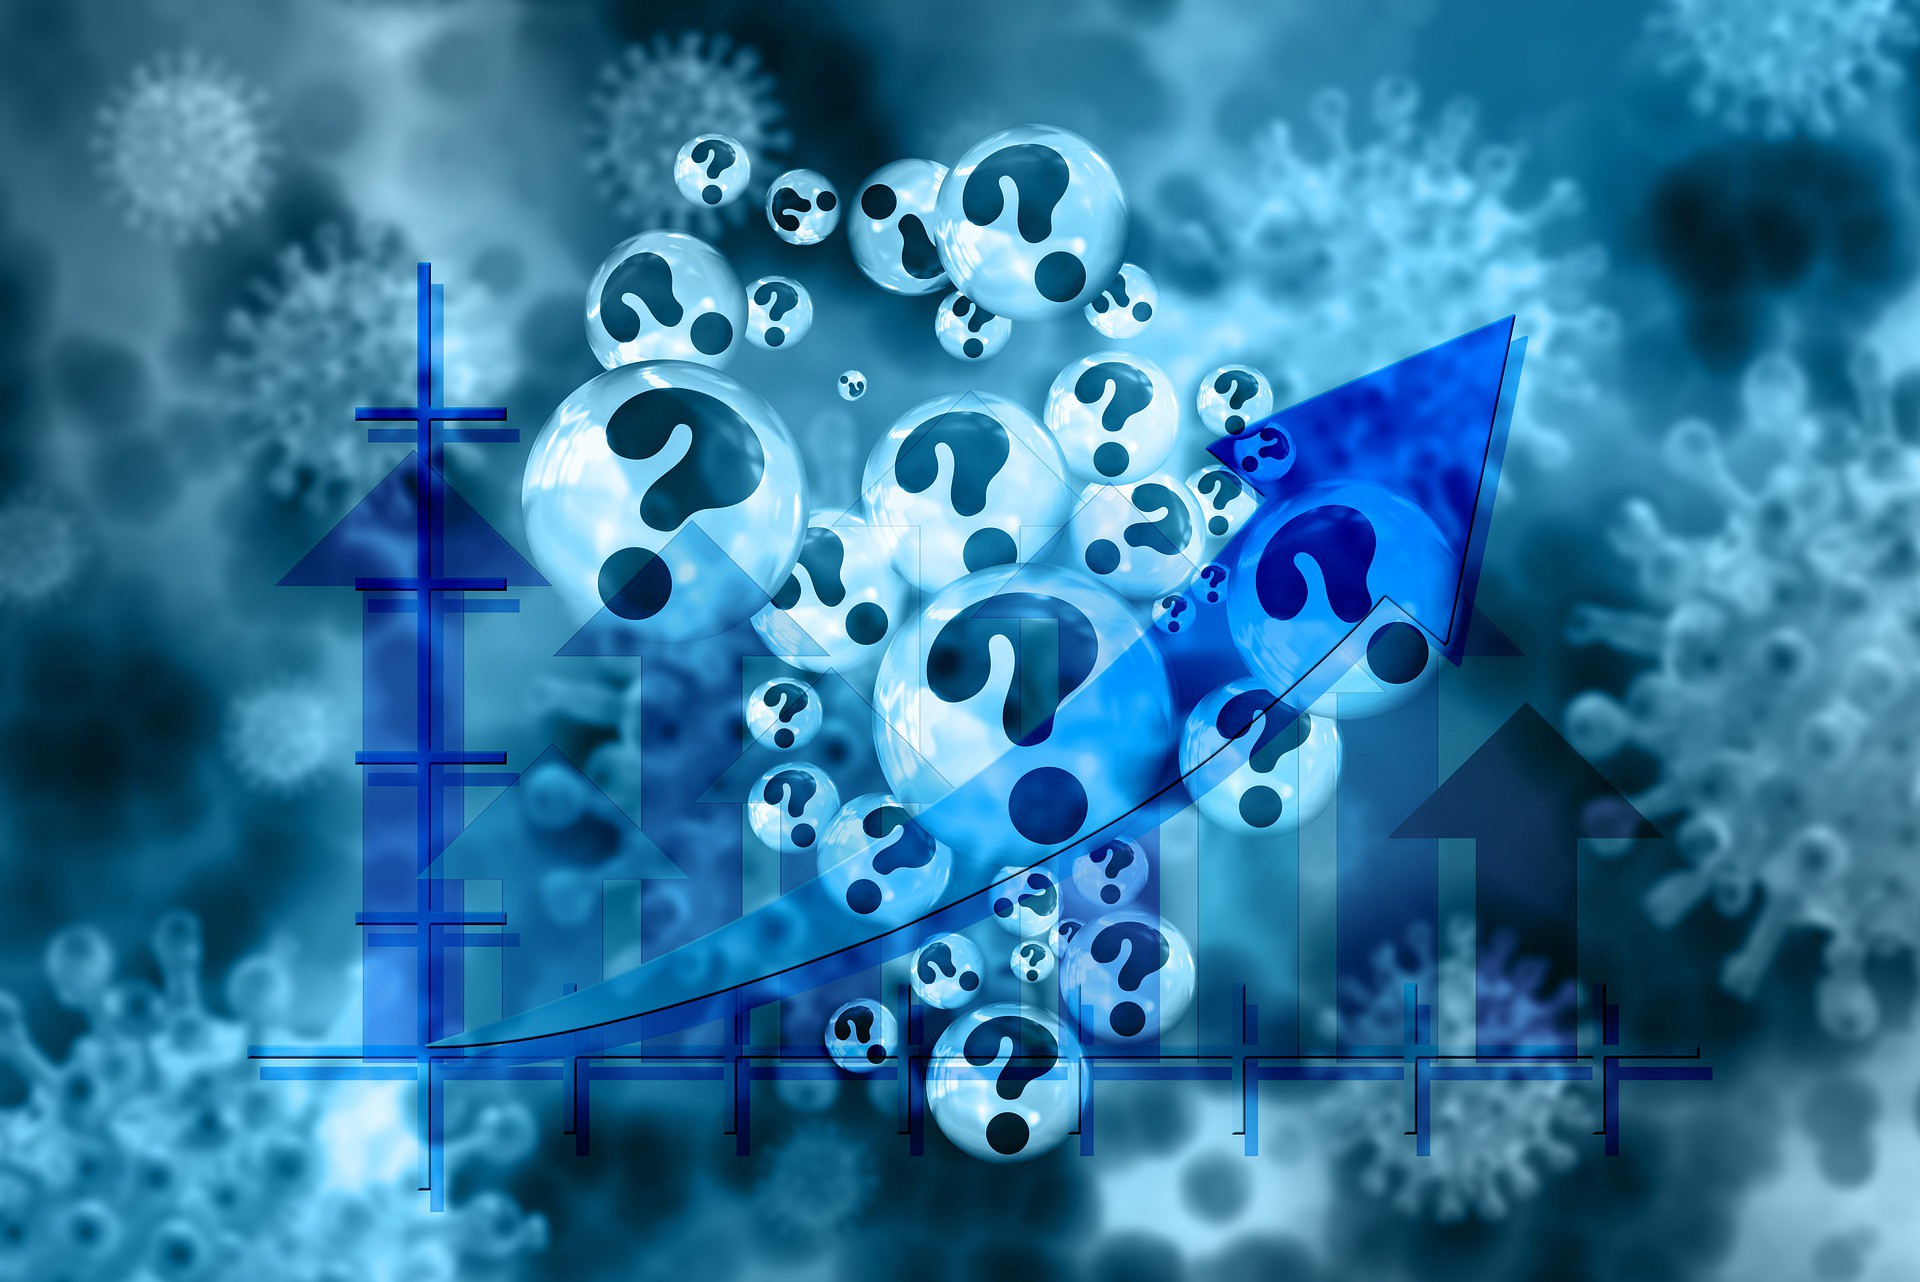 Blue graphic featuring overlapping images of a graph with arrows, spiky virus particles and floating question marks